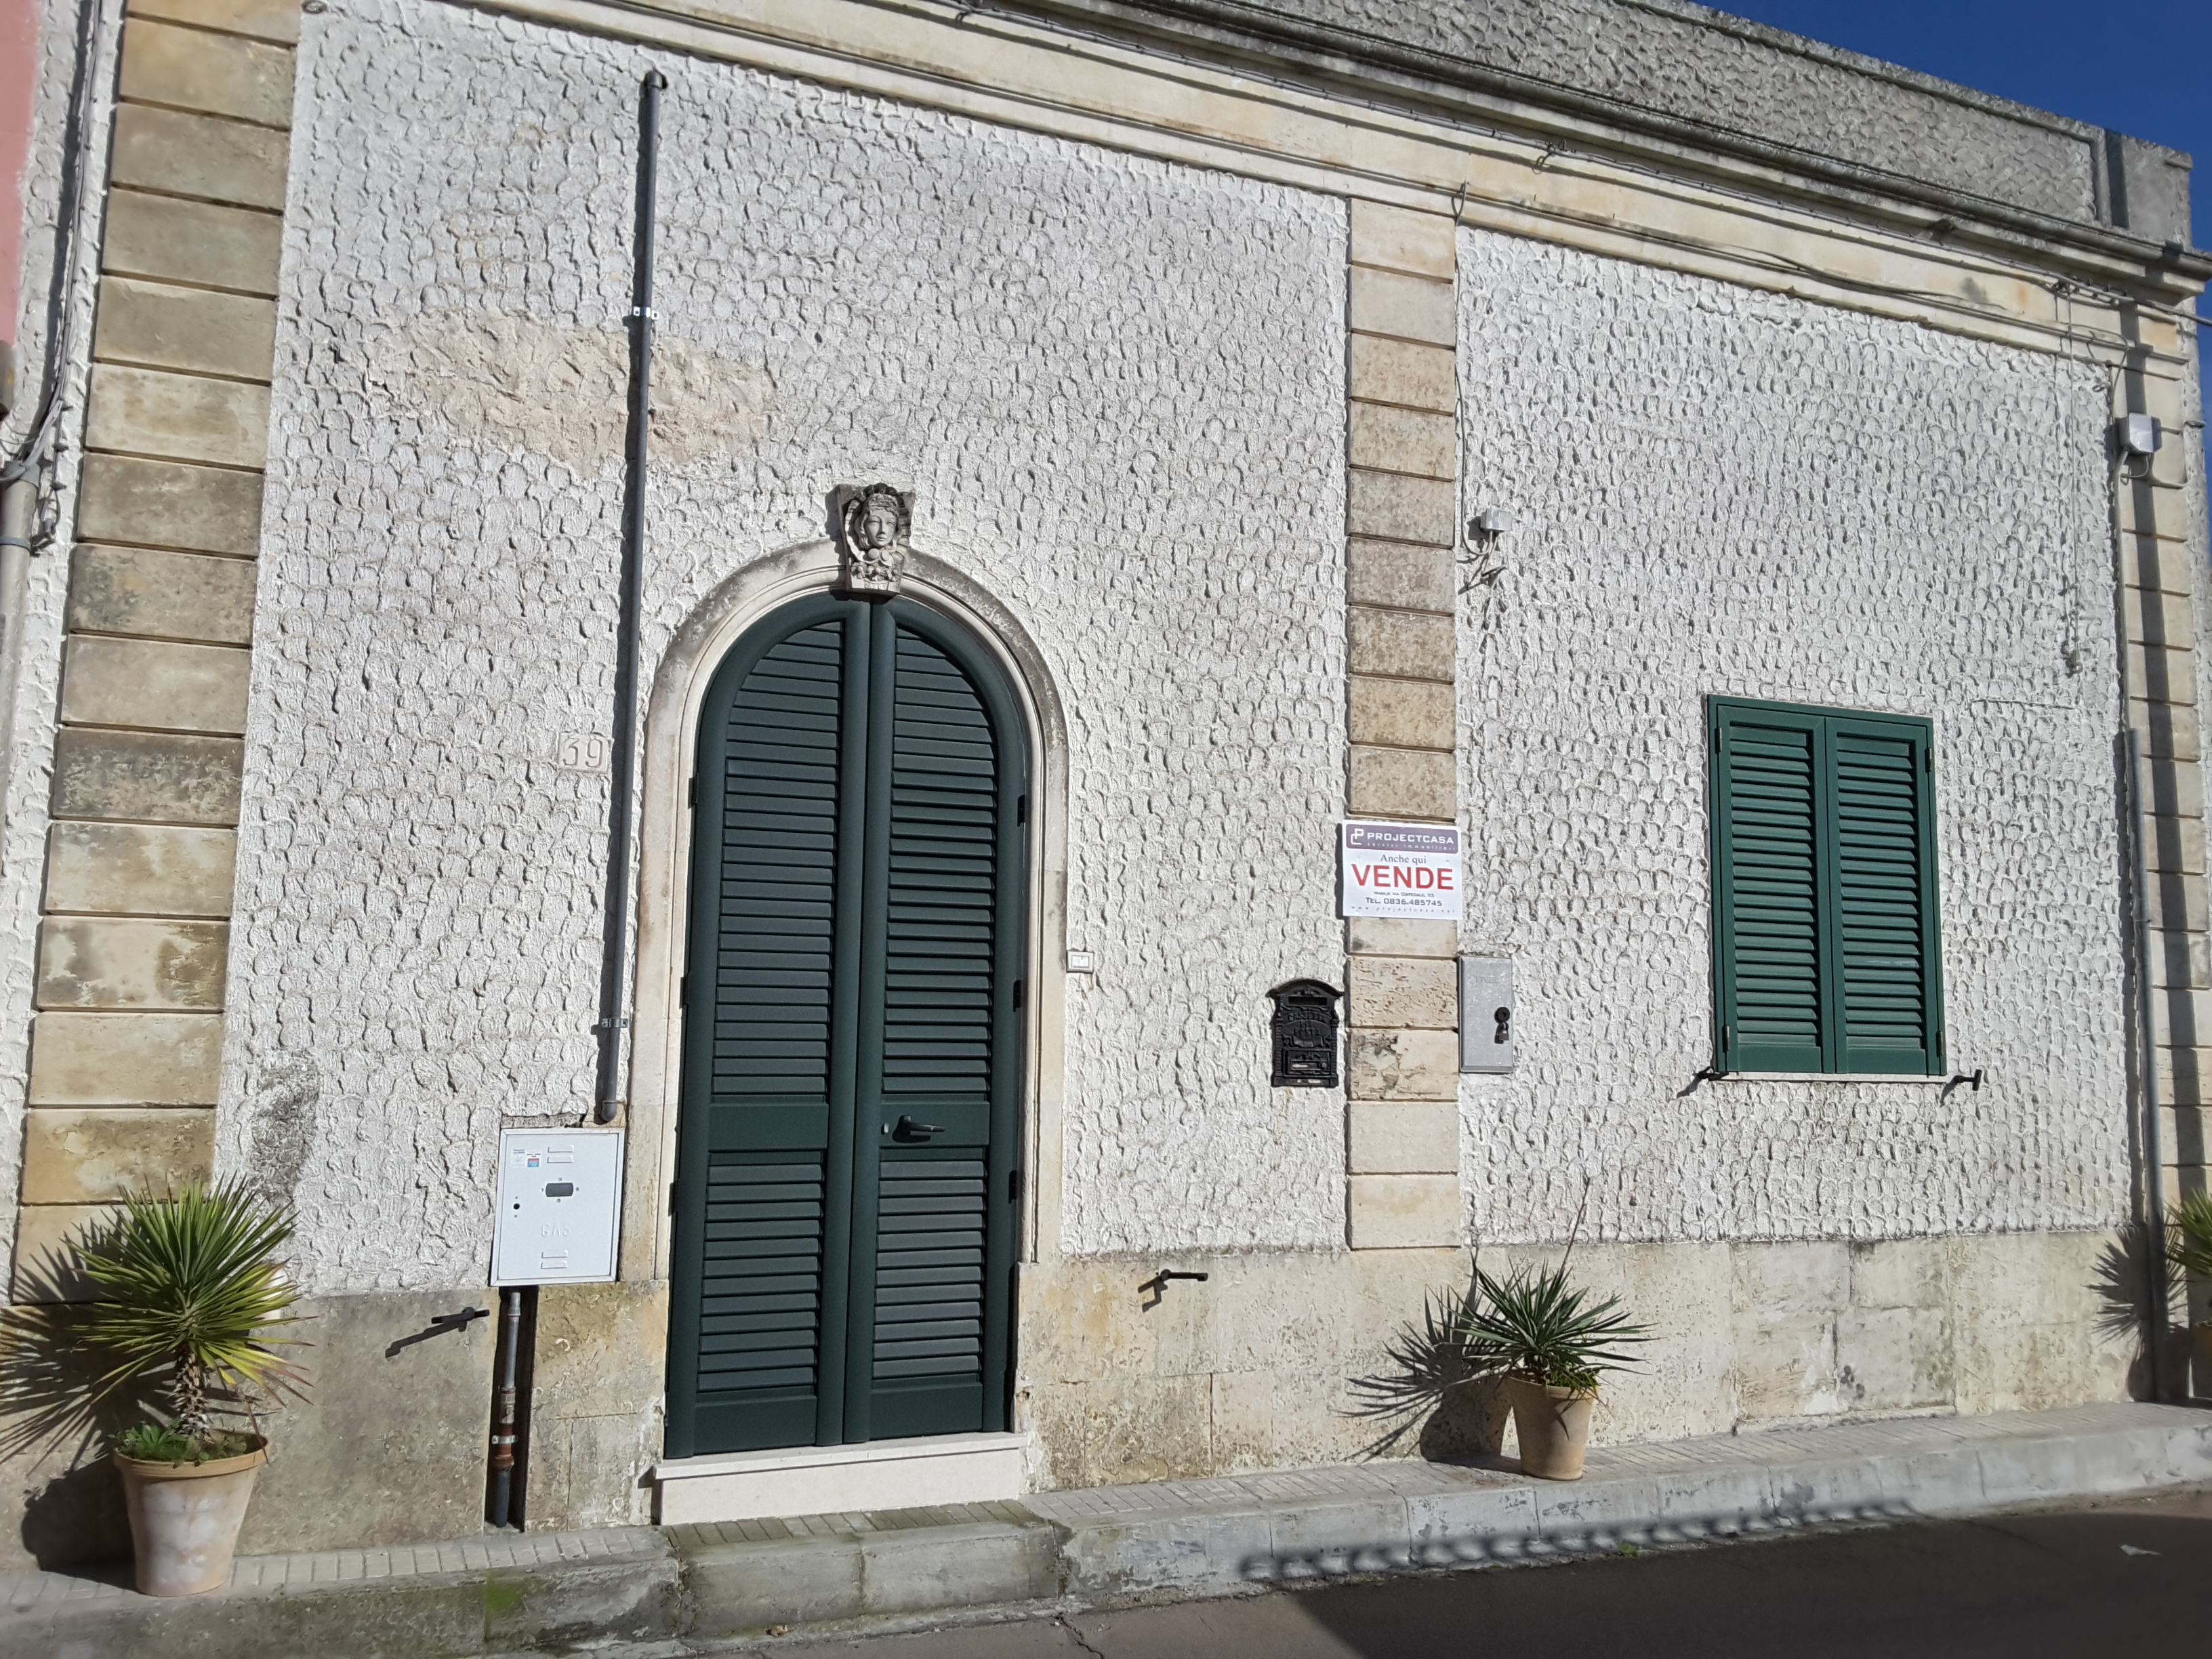 Foto Bagnolo Del Salento : Bagnolo del salento destination guide apulia italy trip suggest